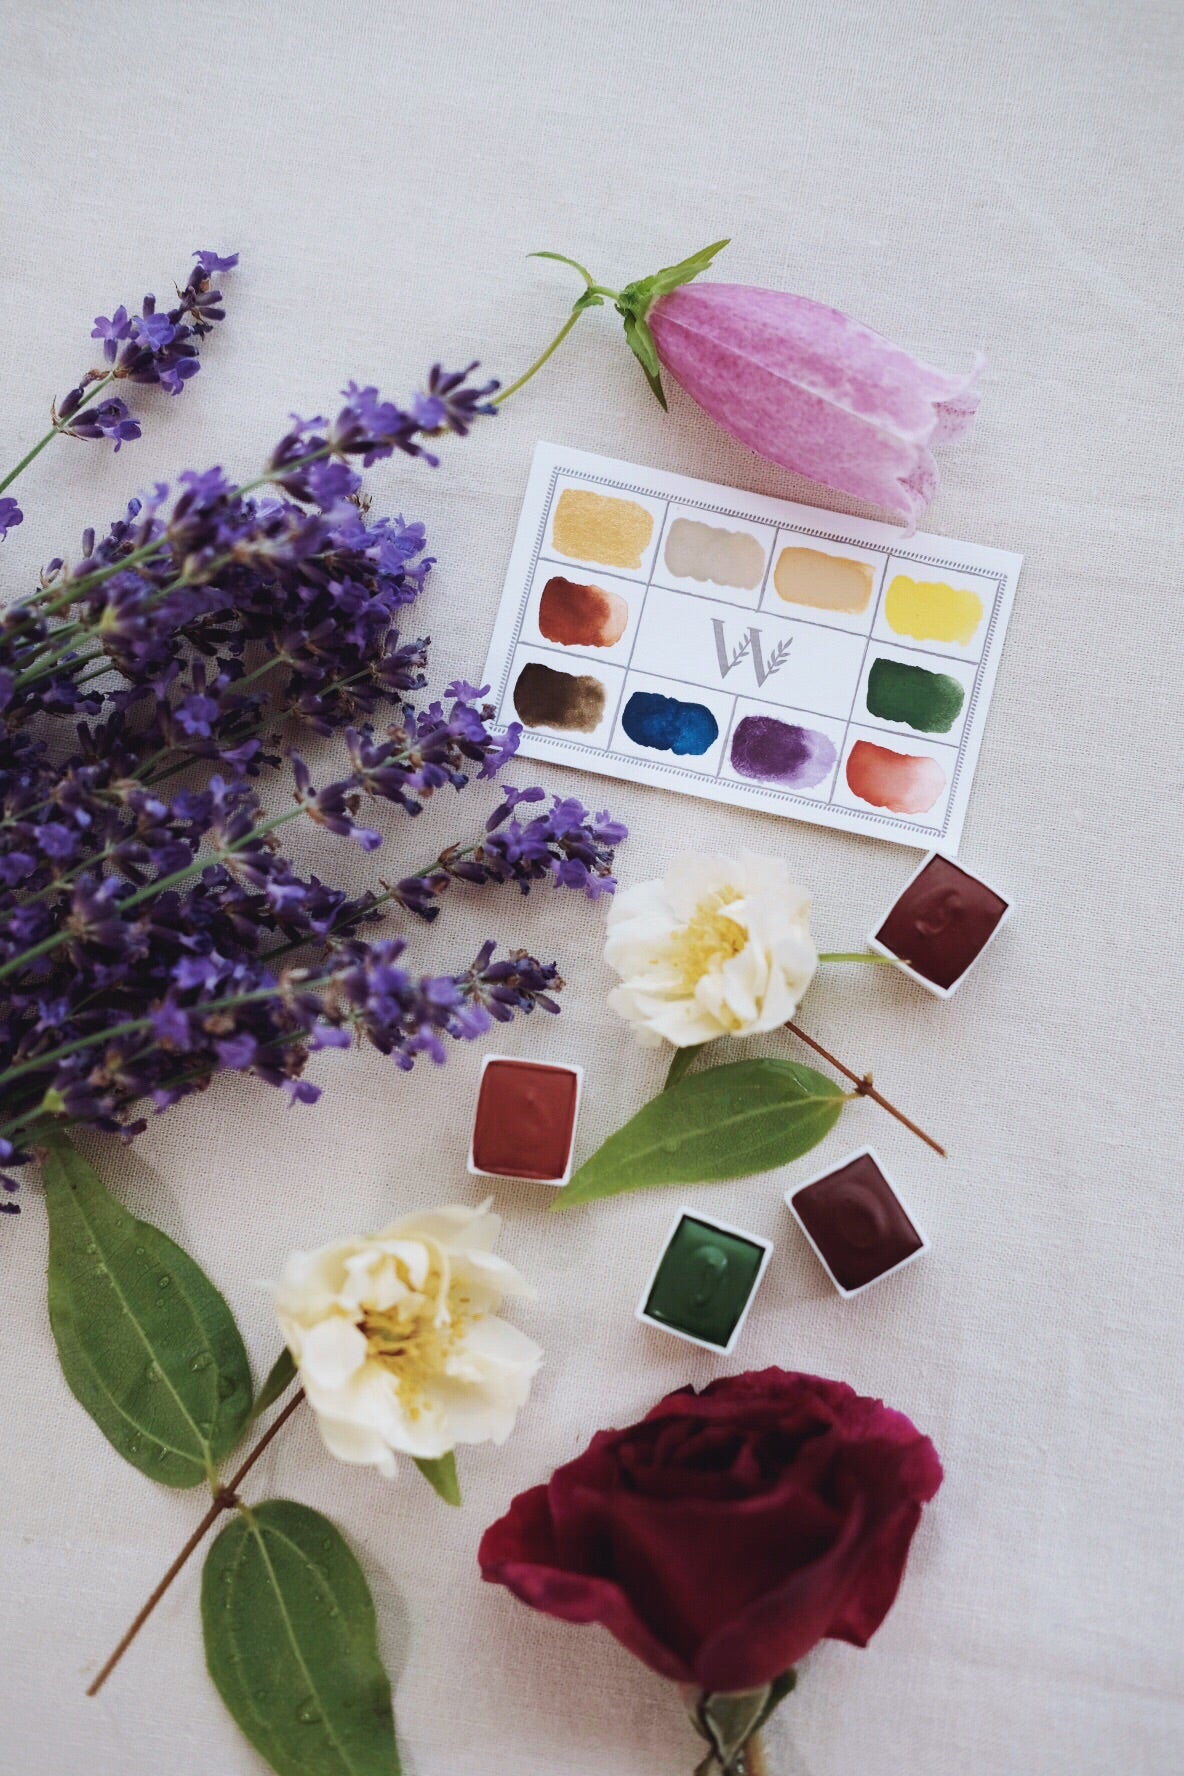 RESERVE for Jean + Dandelion + Earth Mineral watercolor palette